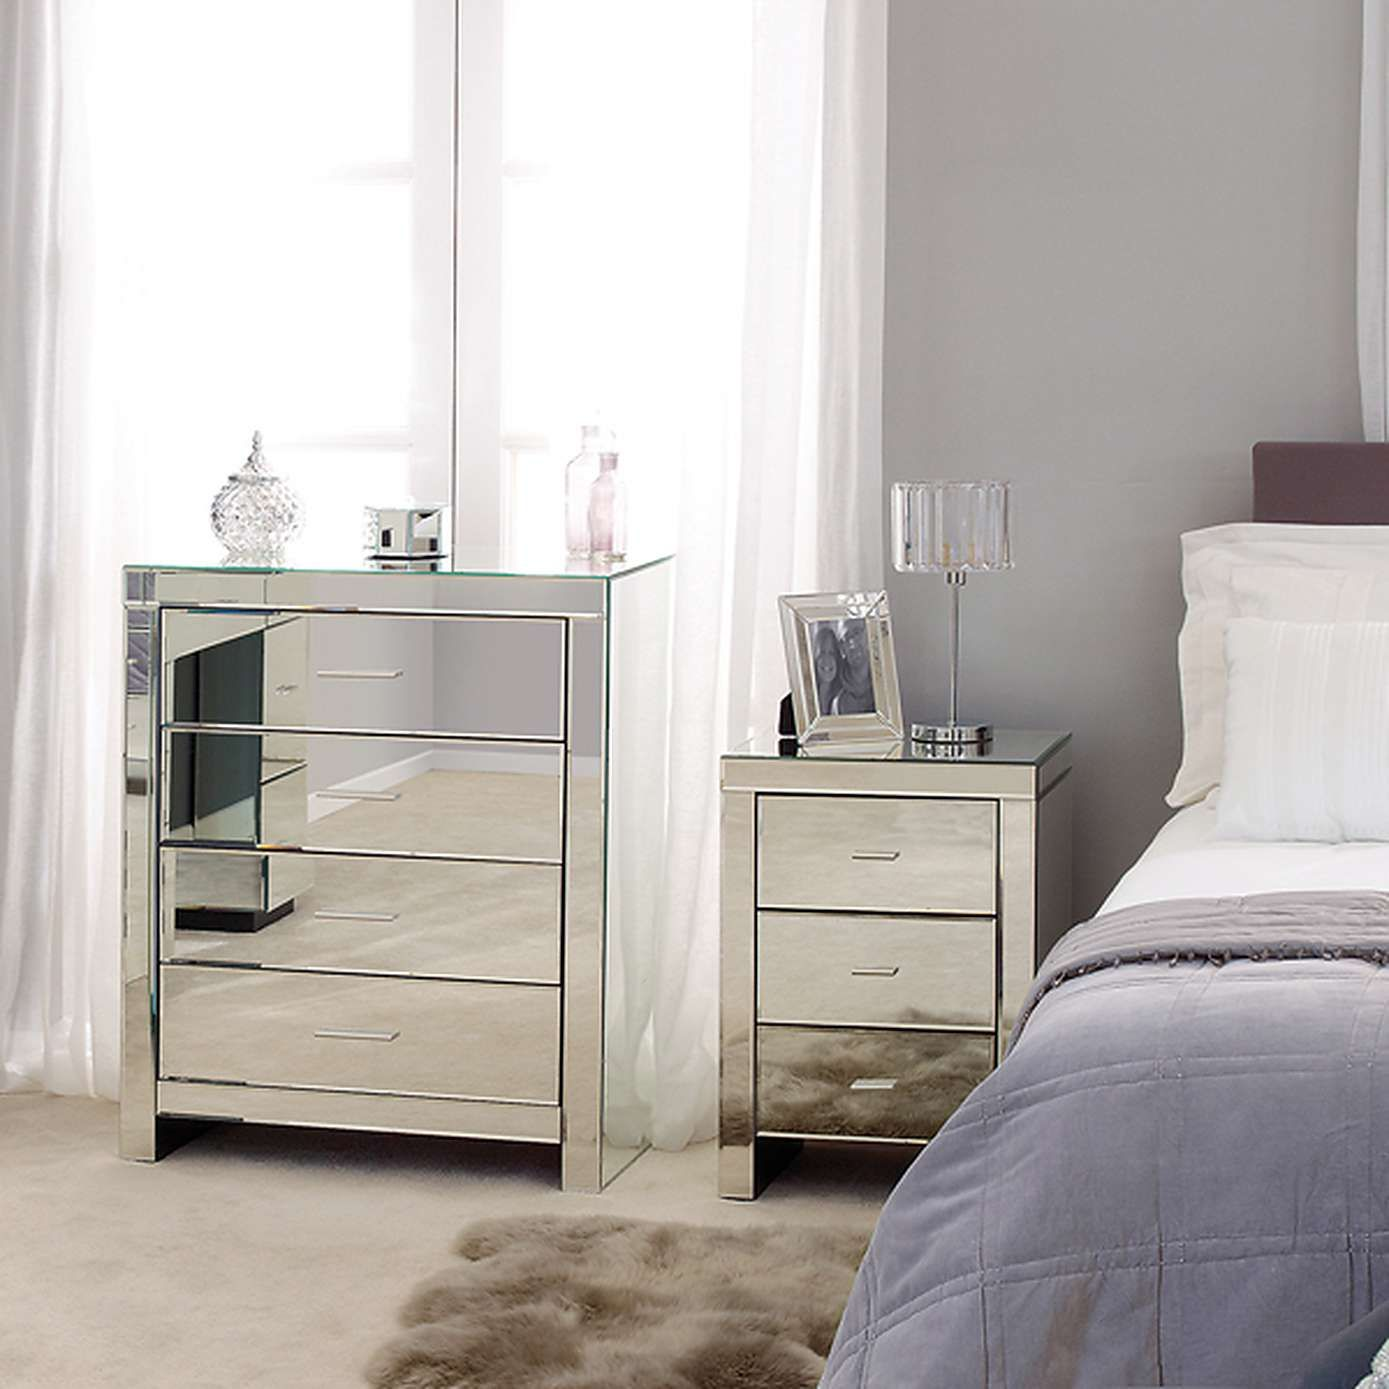 10 Mirrored Furniture Bedroom Ideas Most Incredible And Also Stunning Mirrored Bedroom Furniture Glass Bedroom Furniture Mirrored Furniture